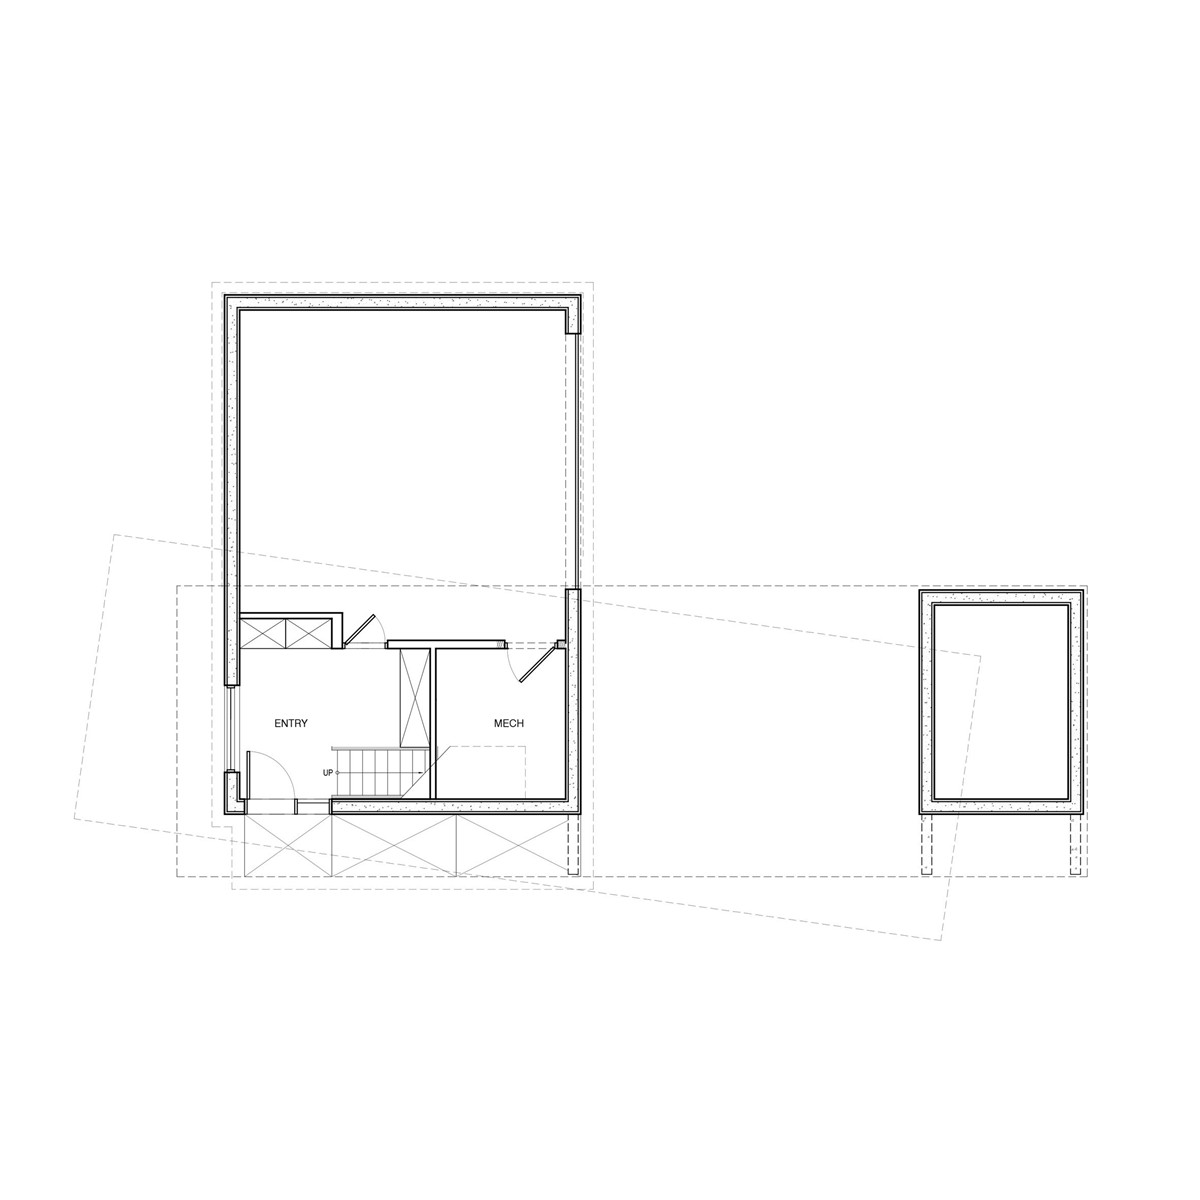 fyren-omar-gandhi_dezeen_2364_ground-floor-plan.jpg